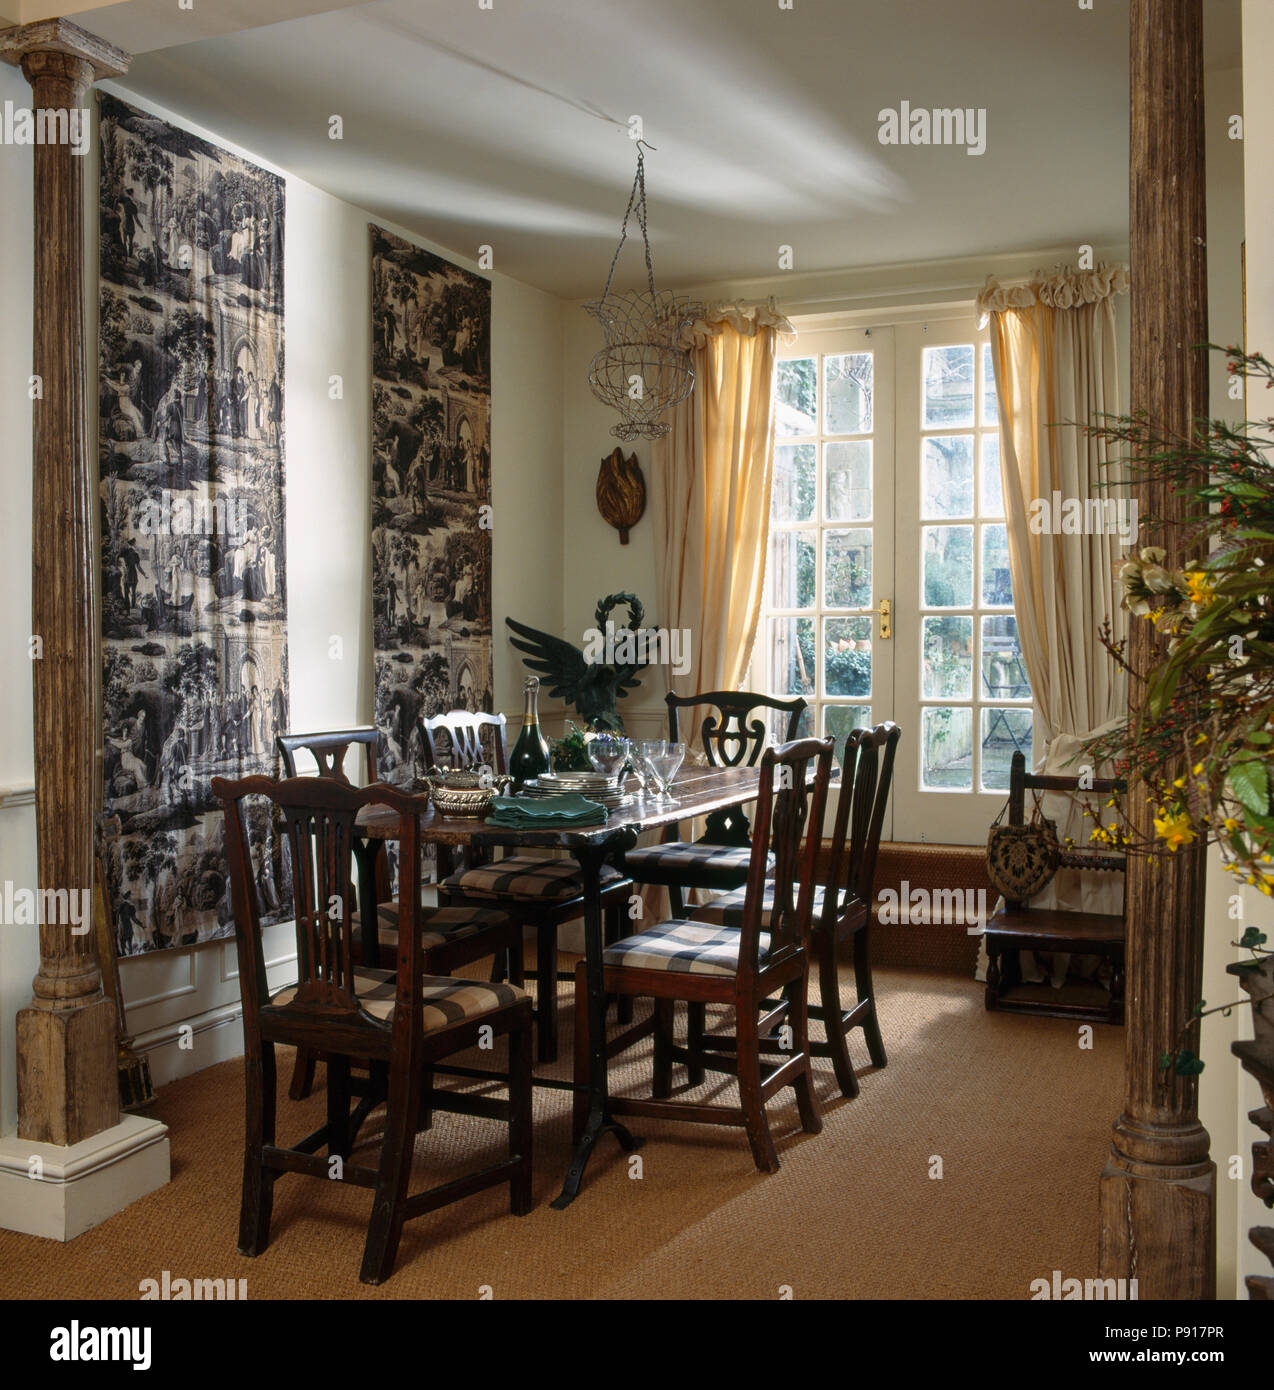 Superieur Heavy Wood Chairs At Table In Dining Room With Toile De Jouy Wall Hangings  And Sisal Carpet